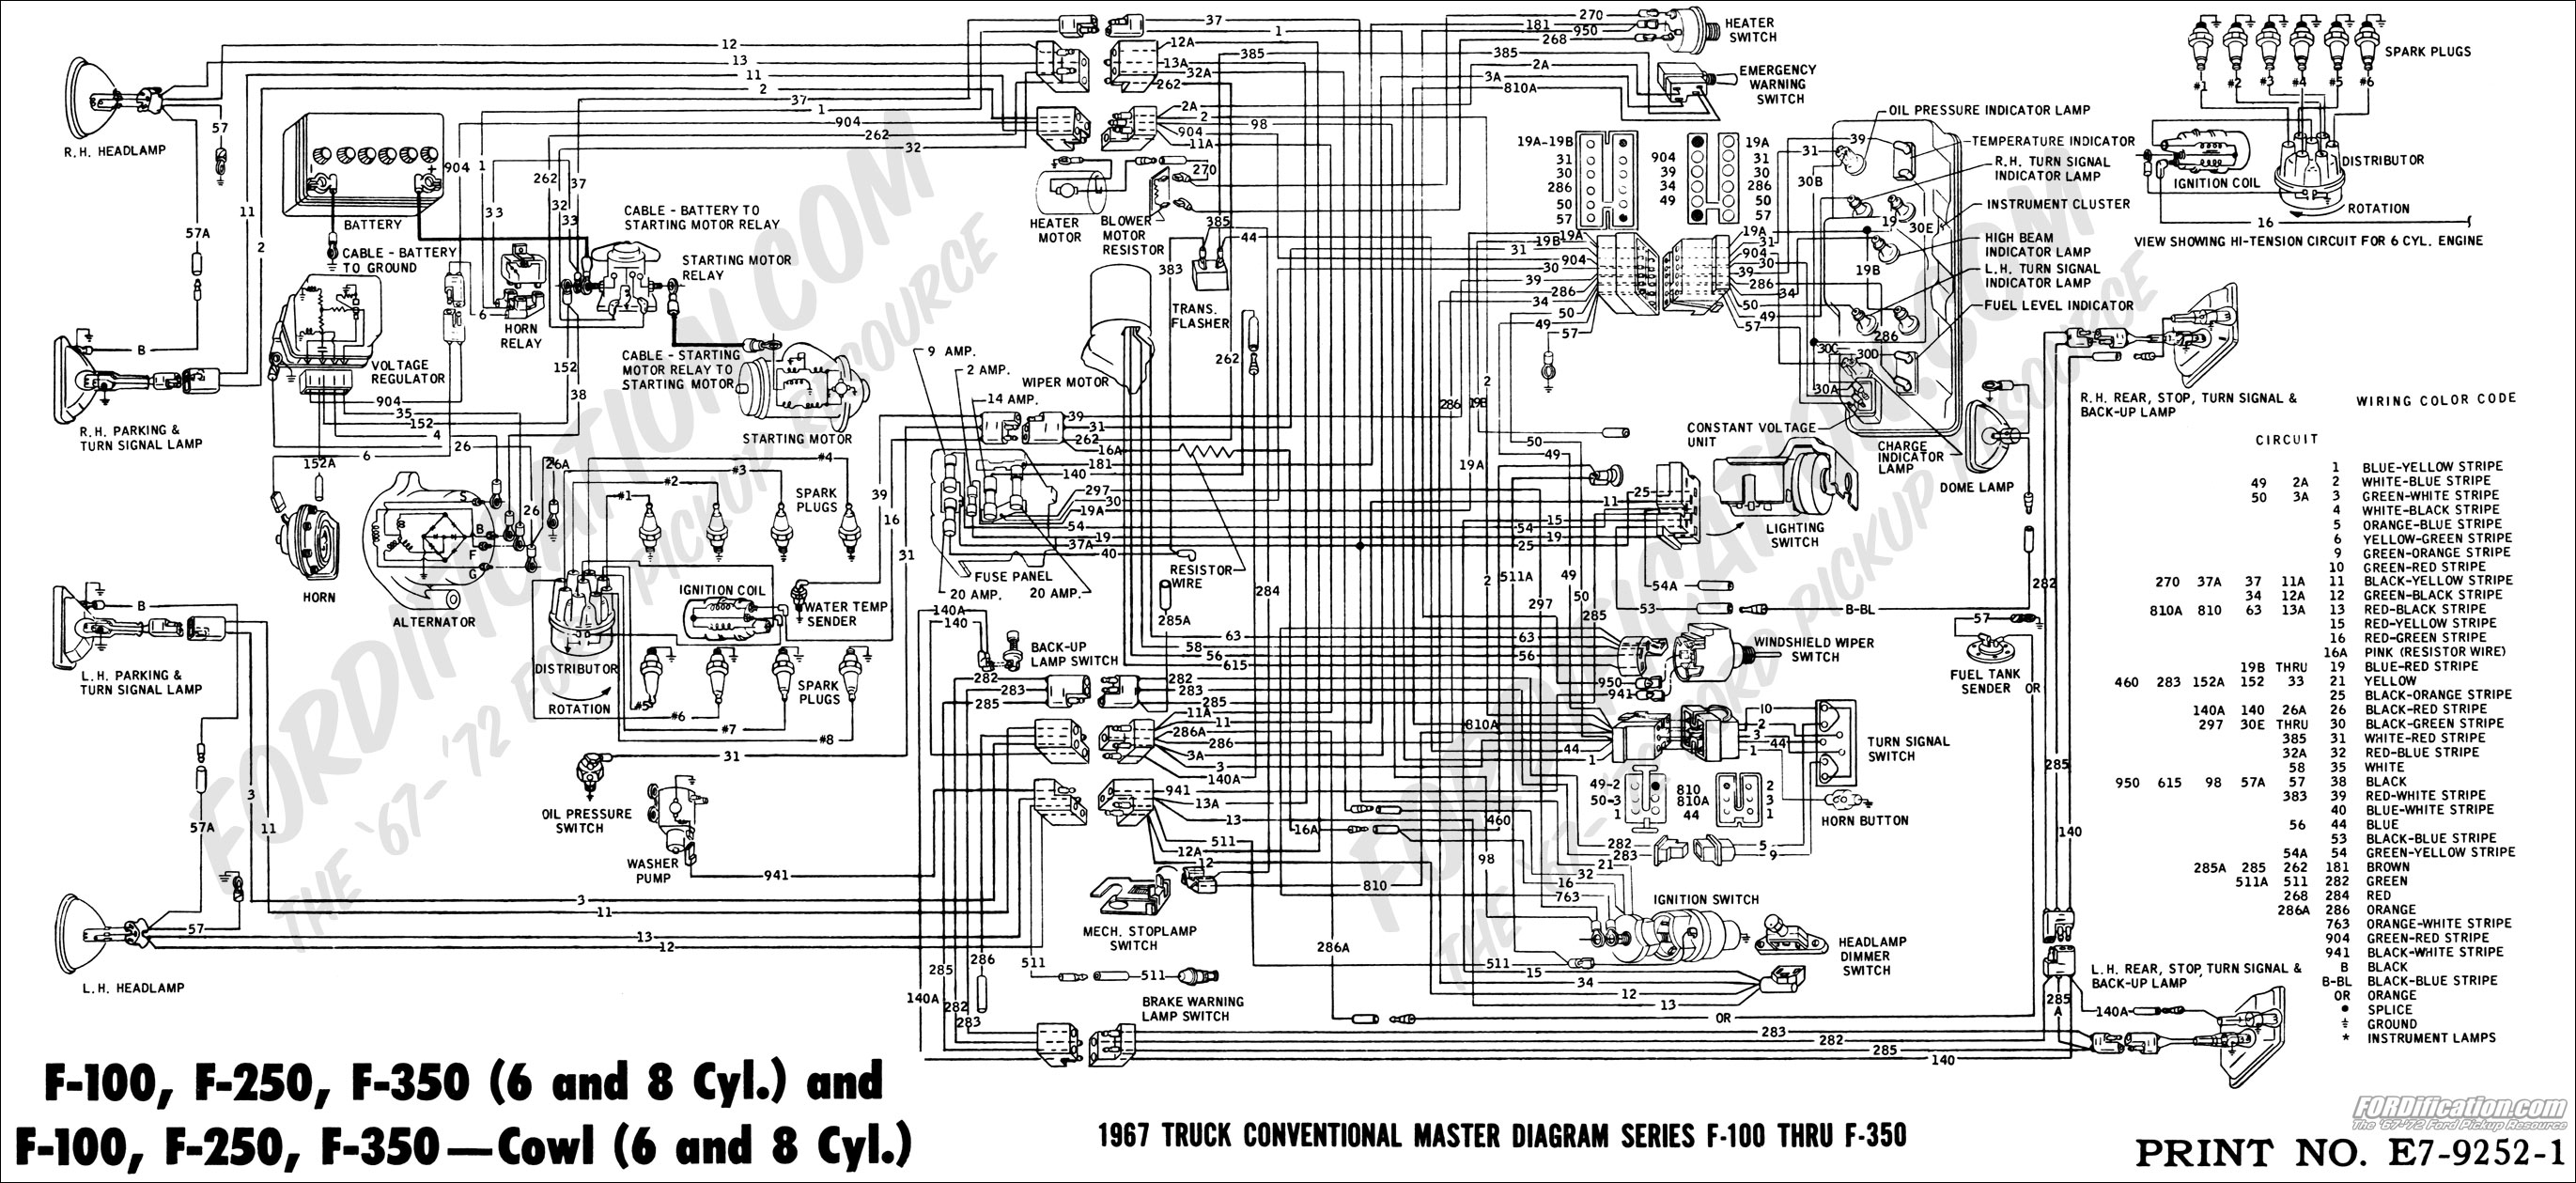 67masterdiagram 99 f150 wiring diagram 99 f150 stereo wiring diagram \u2022 wiring 1999 ford ranger xlt wiring diagrams at gsmx.co